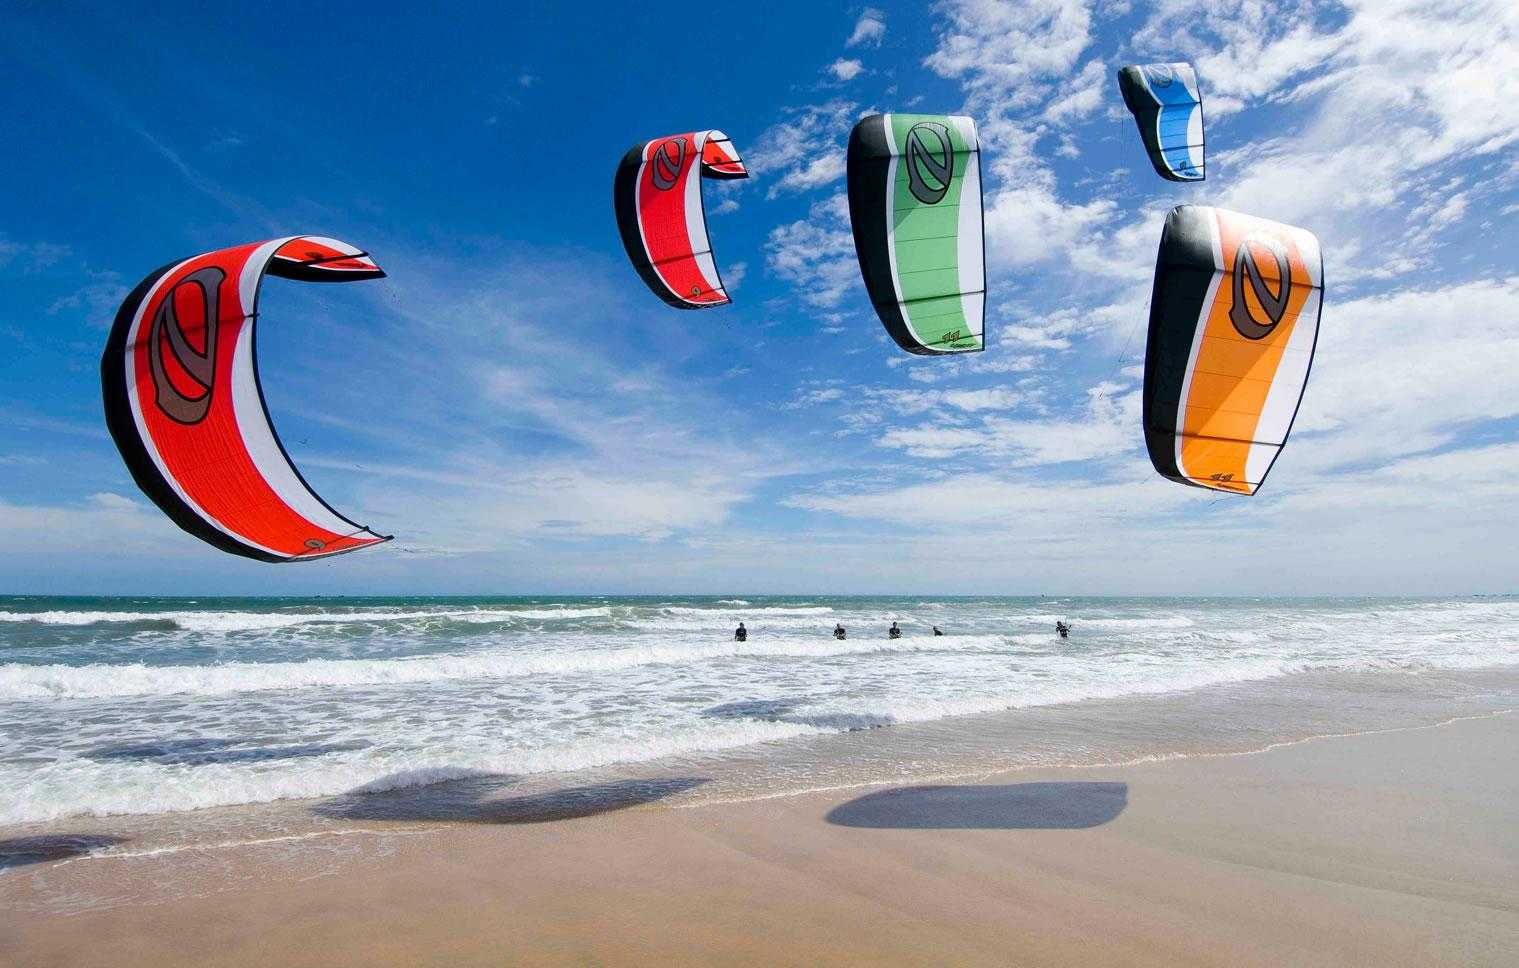 one-of-those-kite-surfers-could-be-you